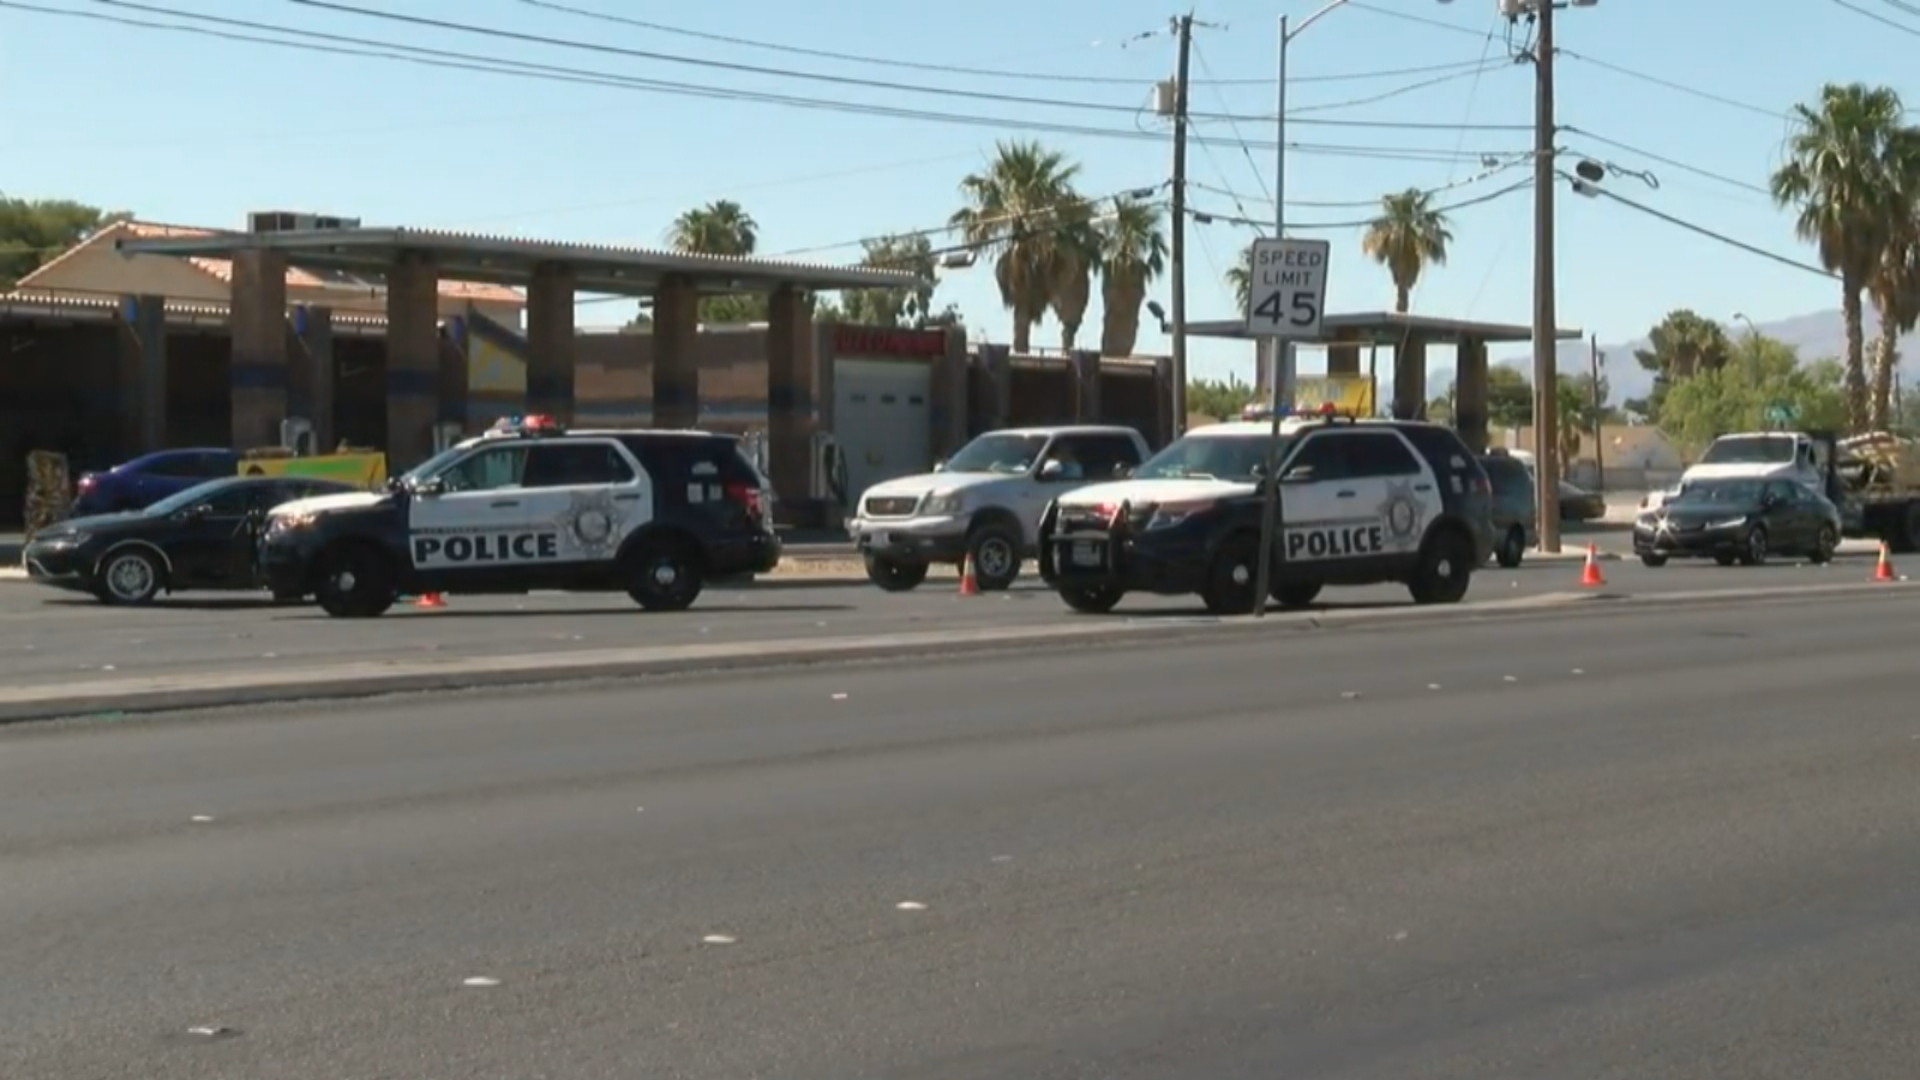 Police investigate a crash Wednesday, June 14, 2017, in the intersection of South Nellis Boulevard and East Sahara Avenue in Las Vegas. (Ken Takahashi/KSNV)